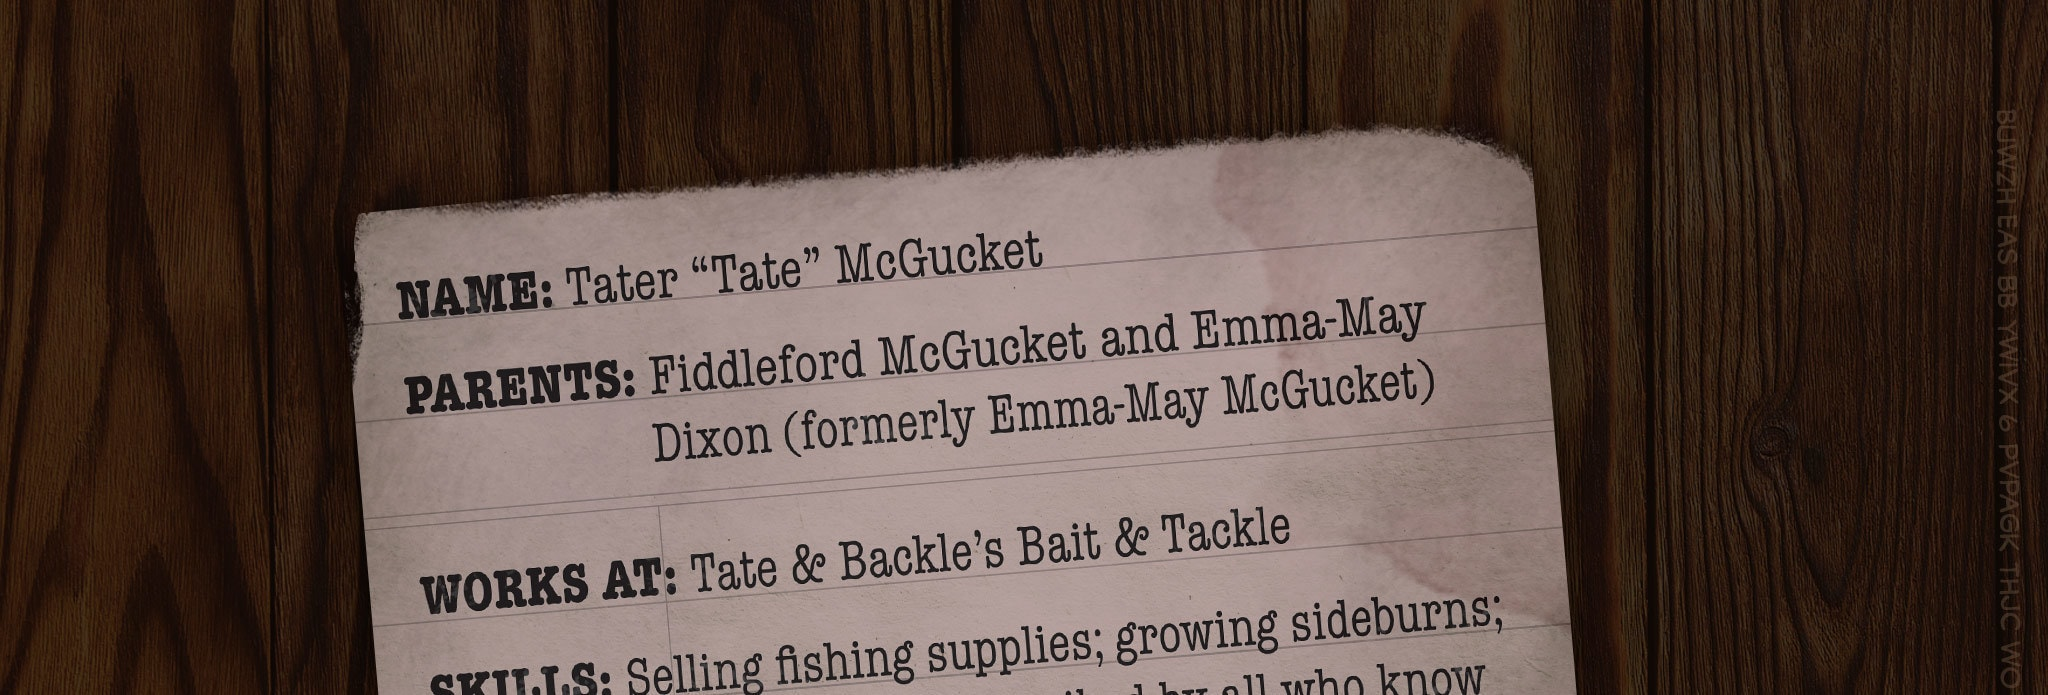 "NAME: Tater ""Tate"" McGucket PARENTS: Fiddleford McGucket and Emma-May Dixon (formerly Emma-May McGucket) WORKS AT: Tate & Backle's Bait & Tackle SKILLS: Selling  fishing supplies; growing sideburns; saying ""Yep;"" is described by all who know him as ""a simple man"" SECRET SHAME: Scored so high on the SATs that the grading machine exploded. Can predict the stock market and weather patterns. Guesses the correct Oregon State Lottery numbers every year, but tells no one. CURRENT RESIDENCE: Living with his father in Northwest Manor (renamed ""McGucket's Hootenanny Hut!!""). Preston Northwest does not care for this name."